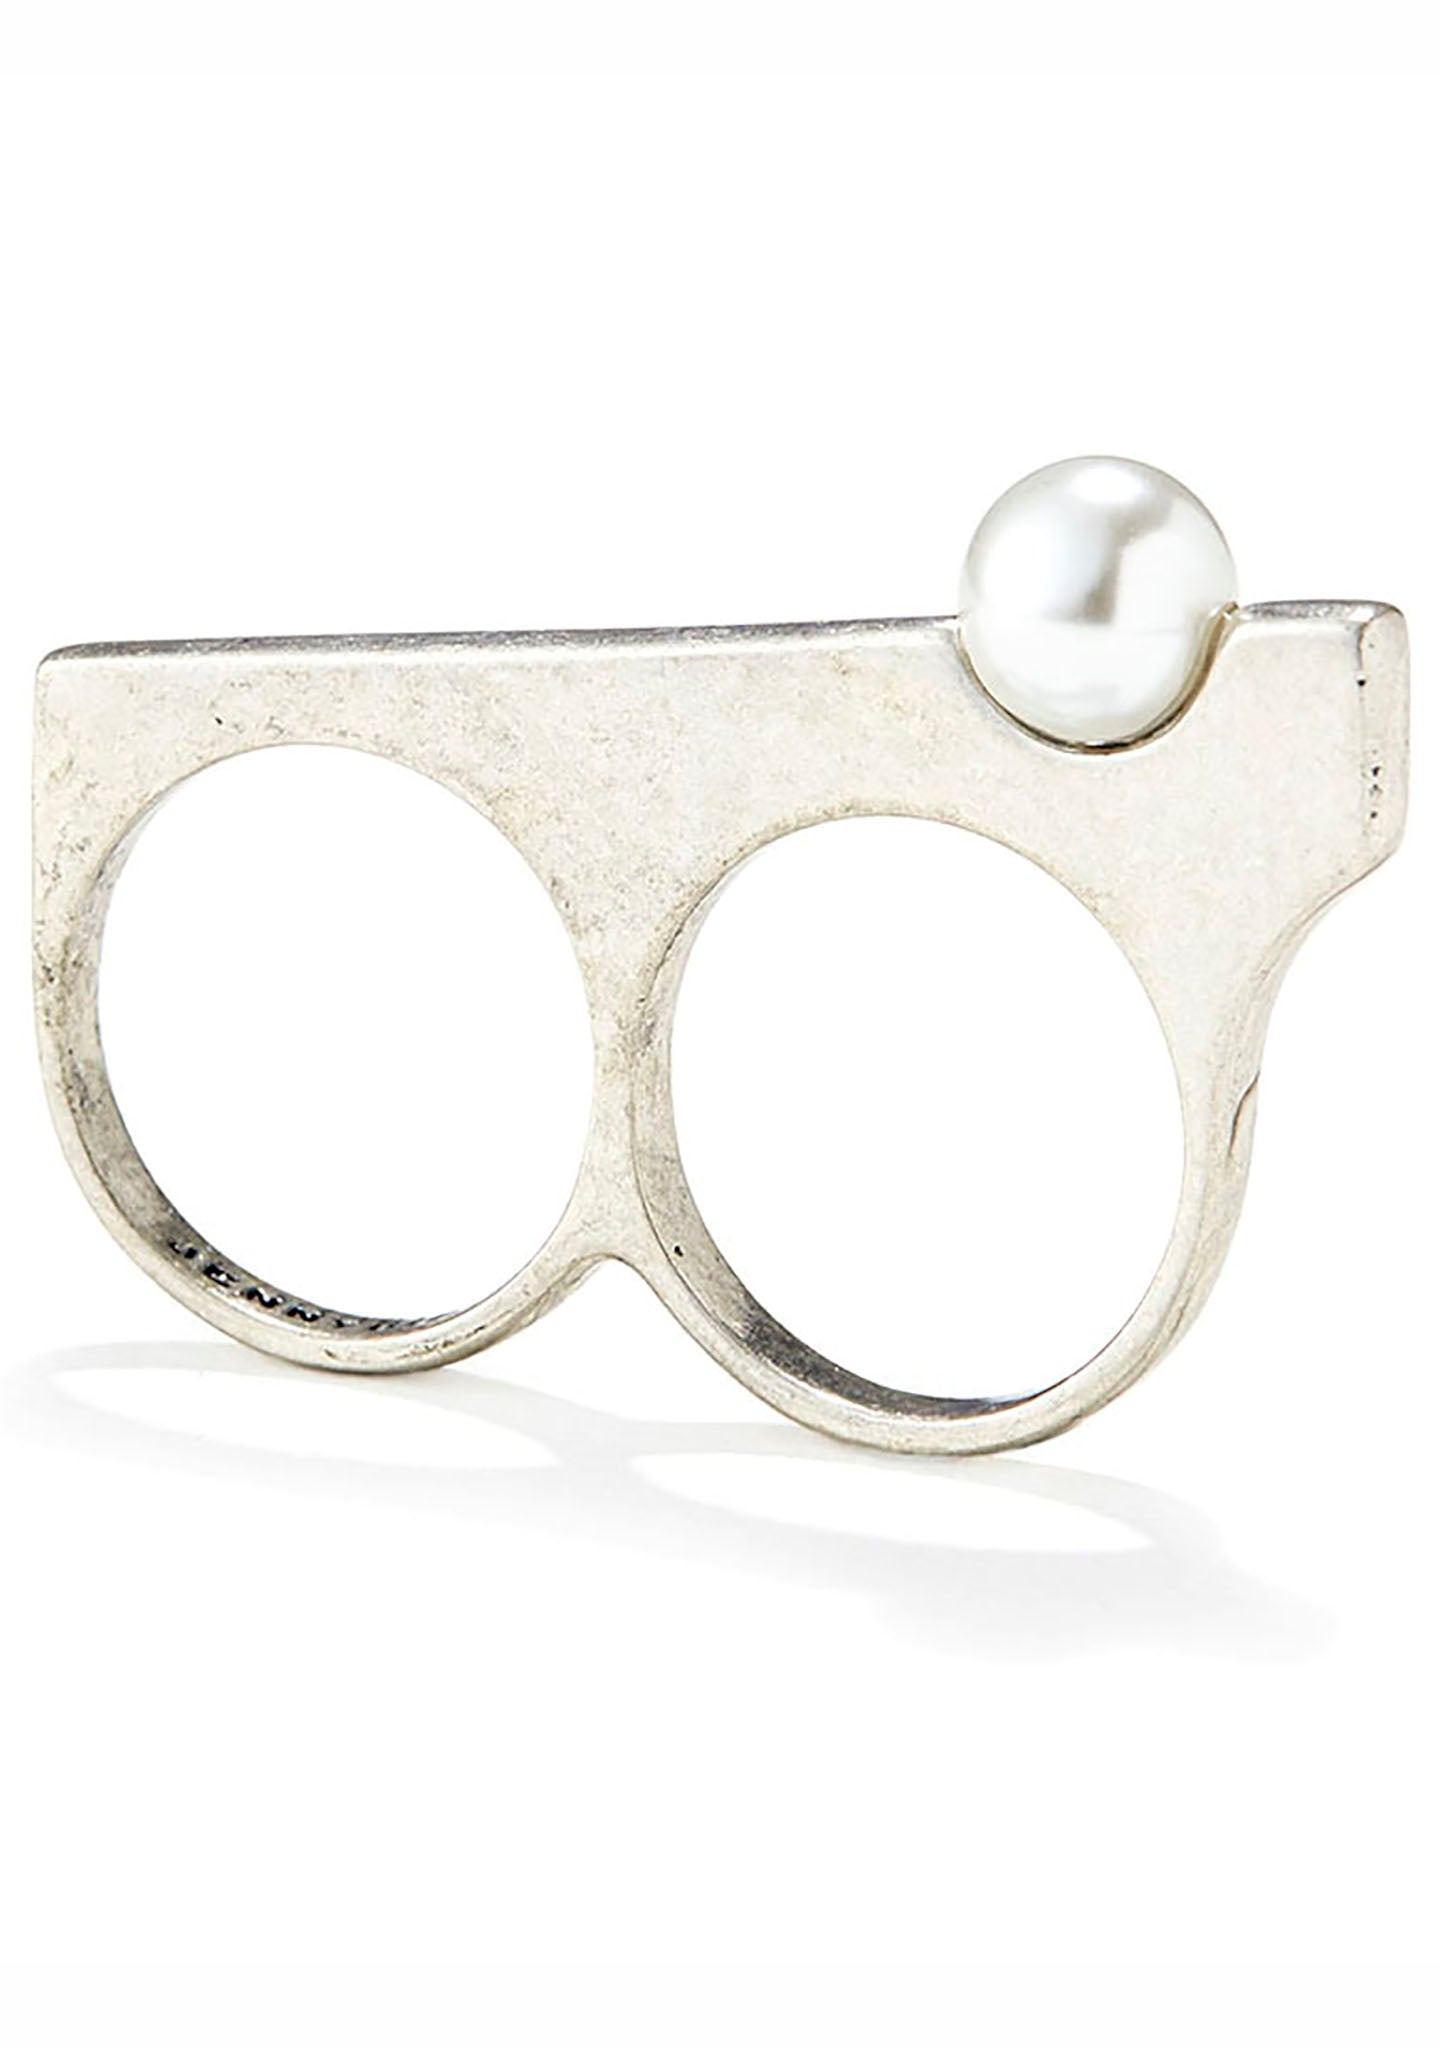 Jenny Bird Maigret Double Ring in Silver